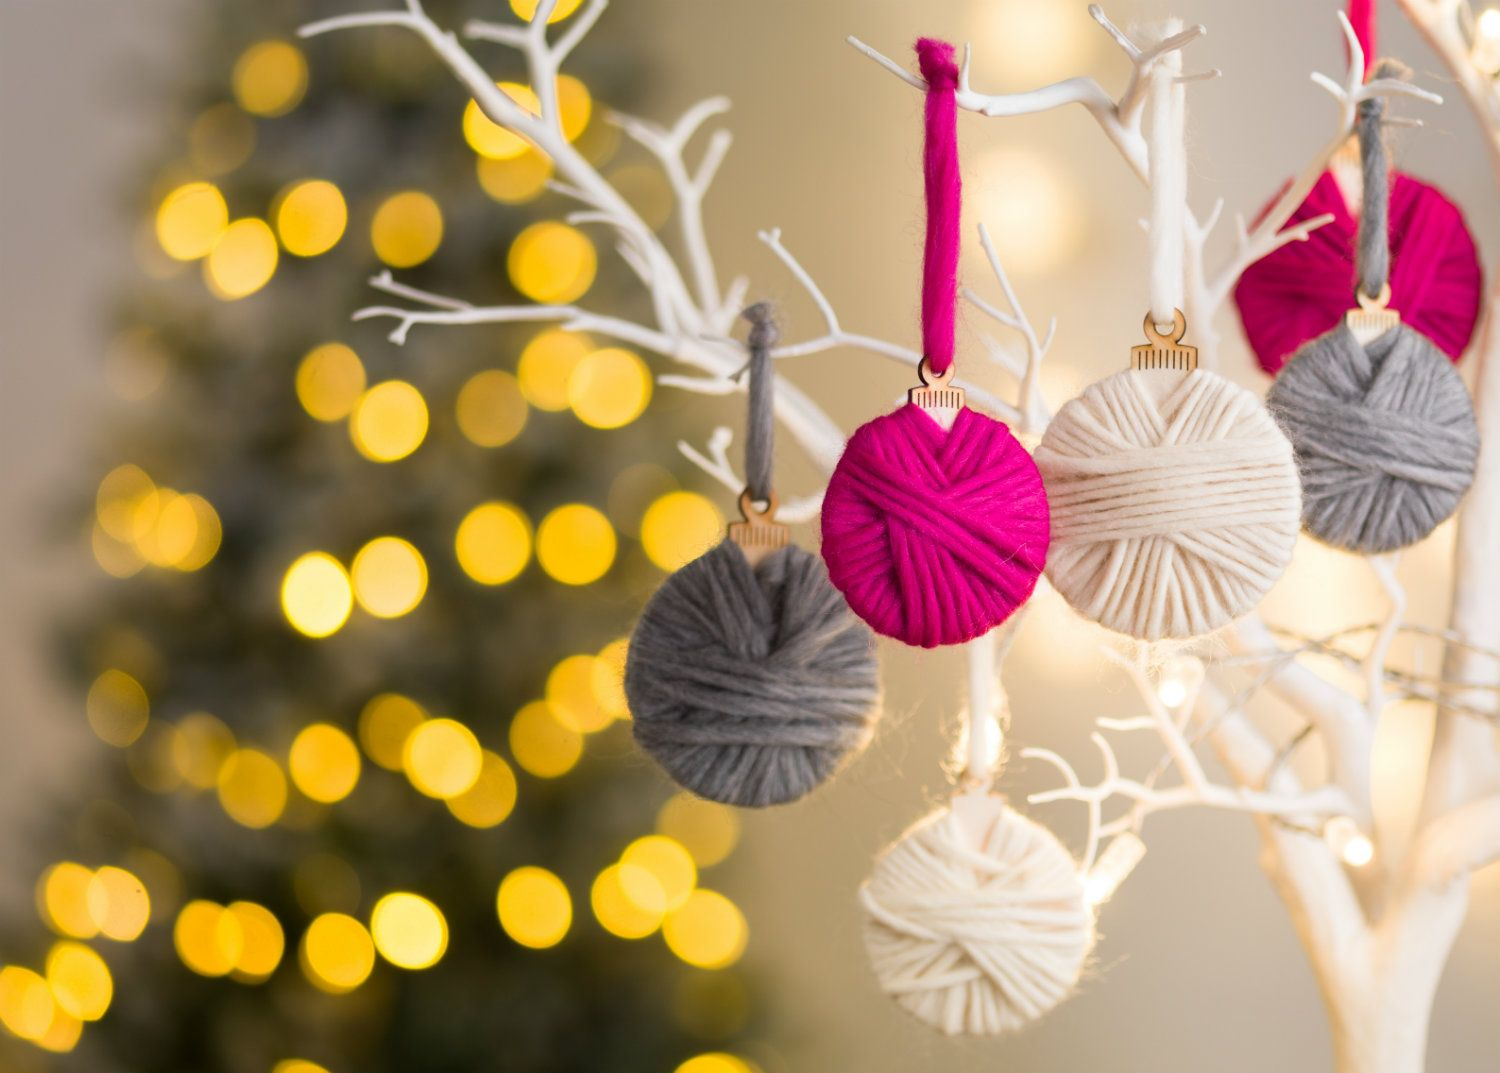 Weaving baubles: a selection of sites